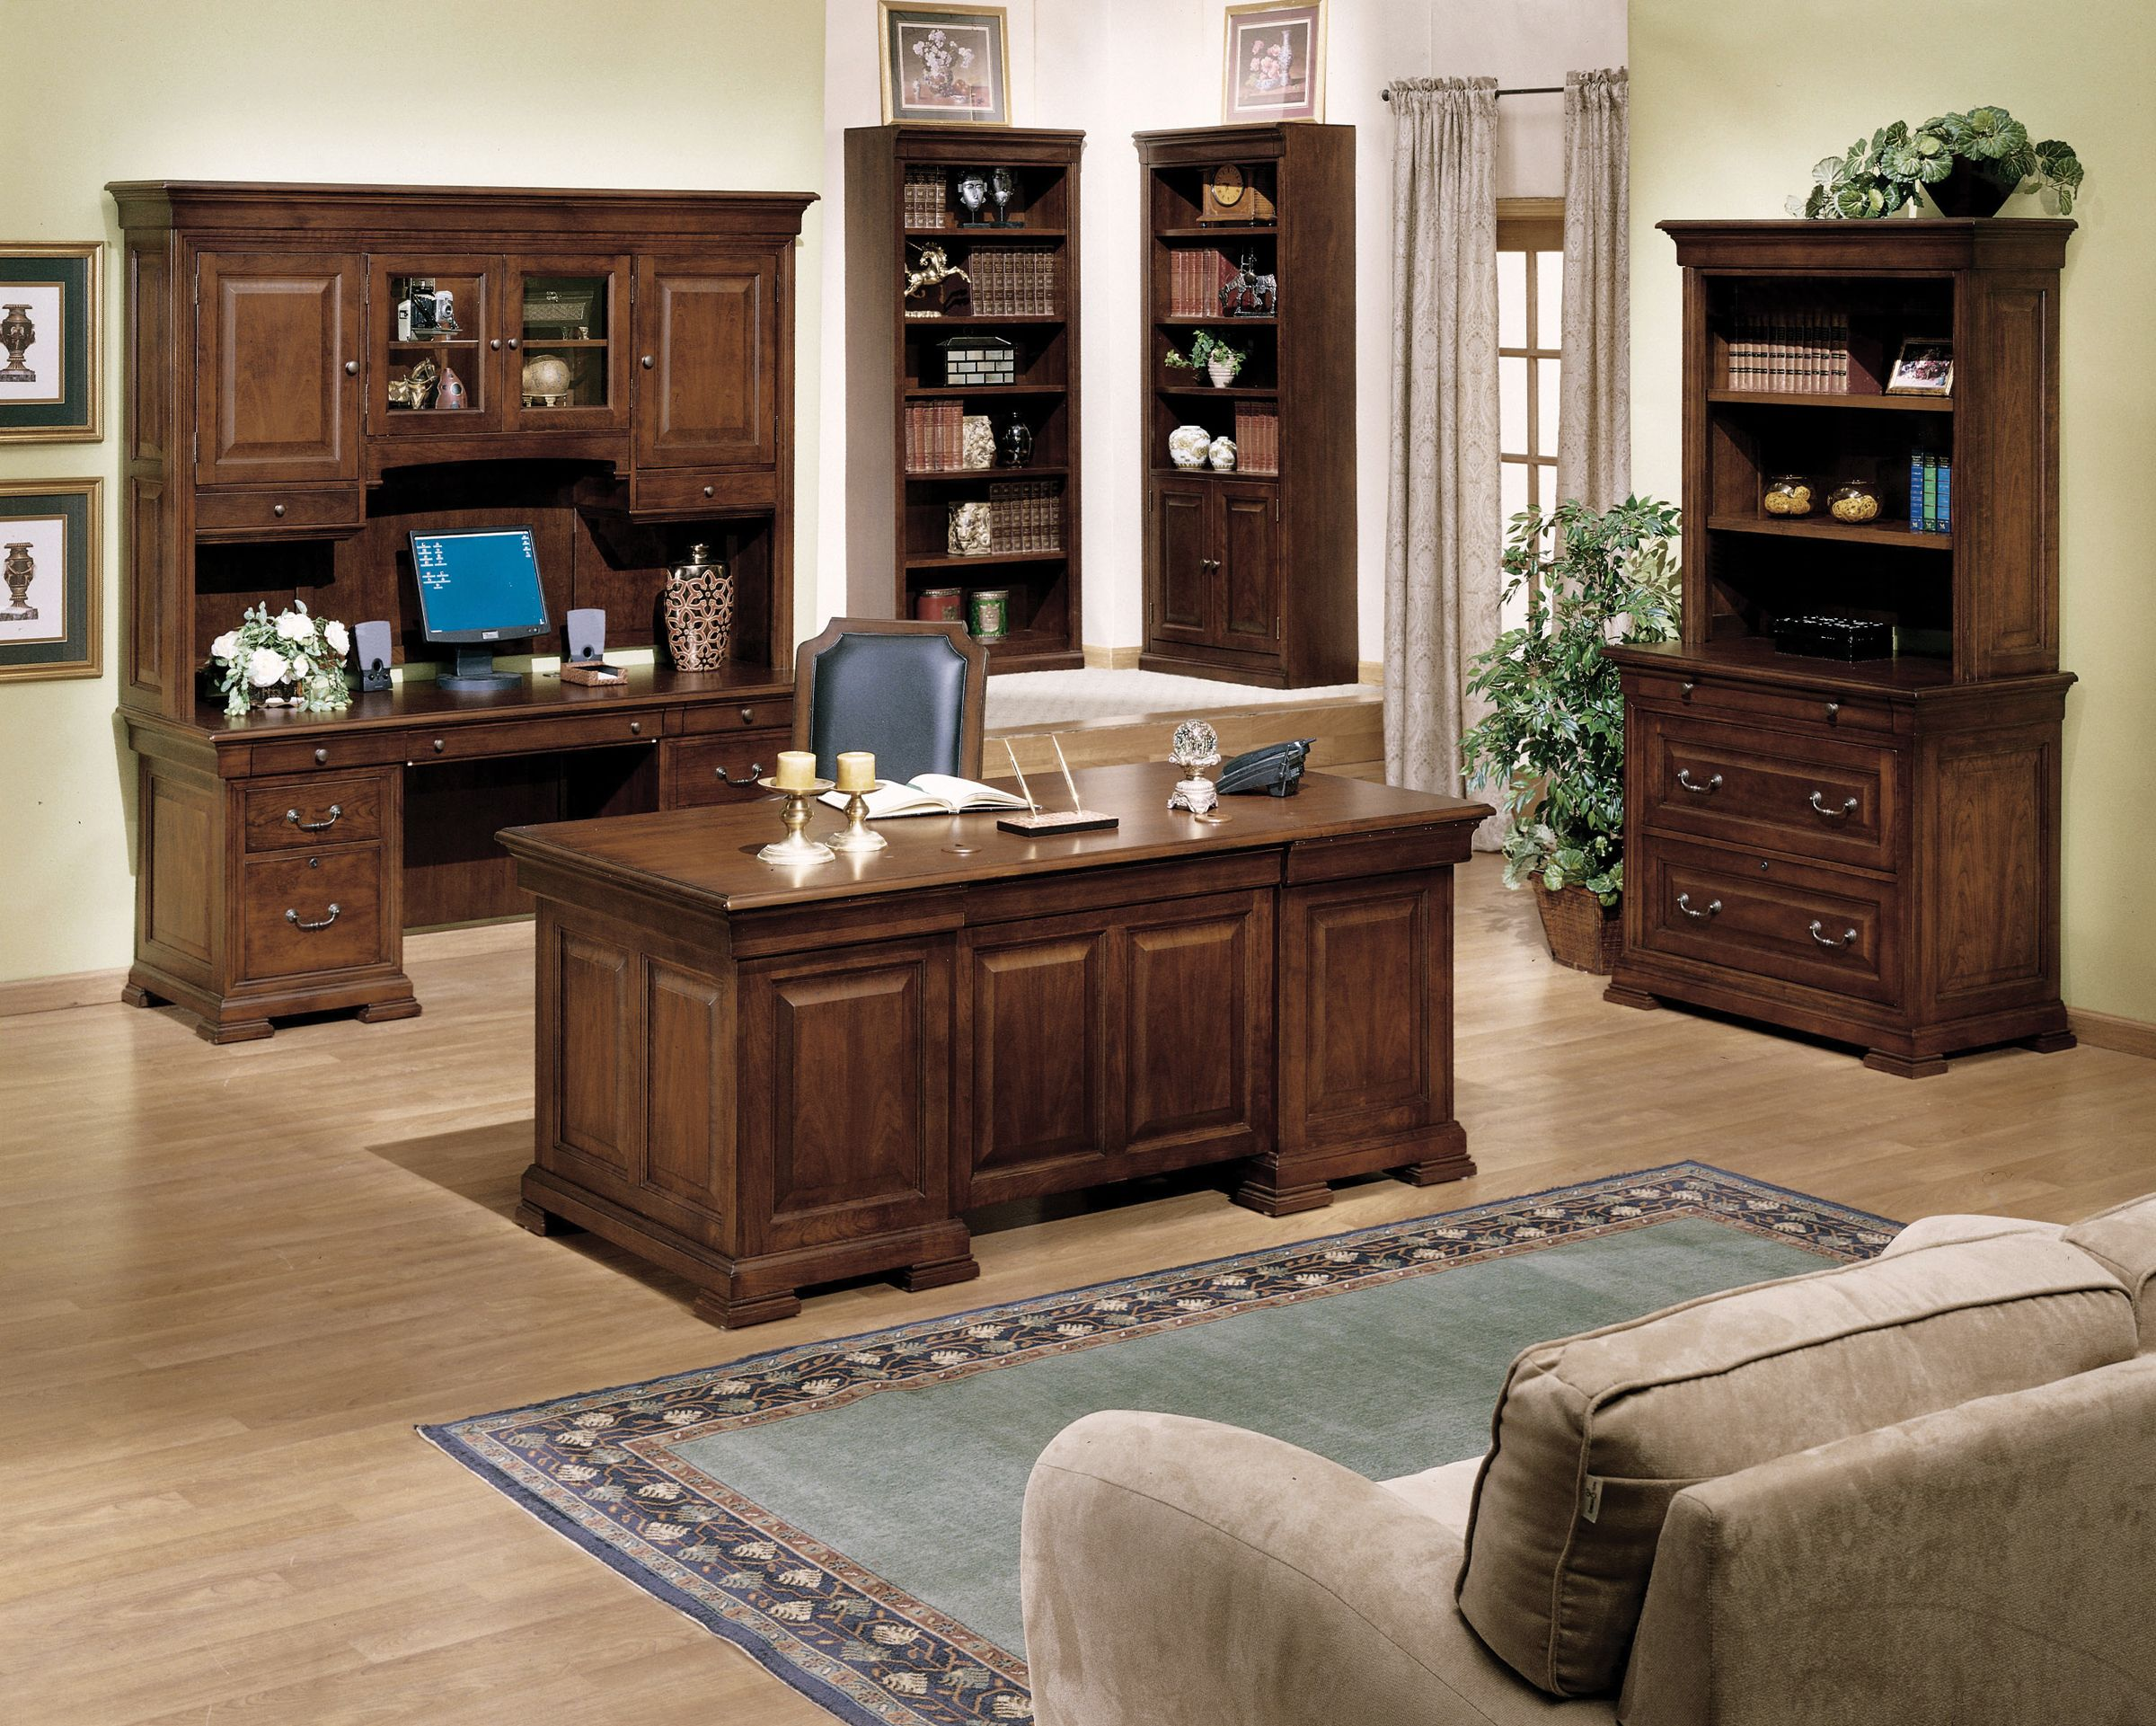 executive desk wooden classic. executive office decorating tips layout u0026 design plan guide to winners only furniture desk wooden classic